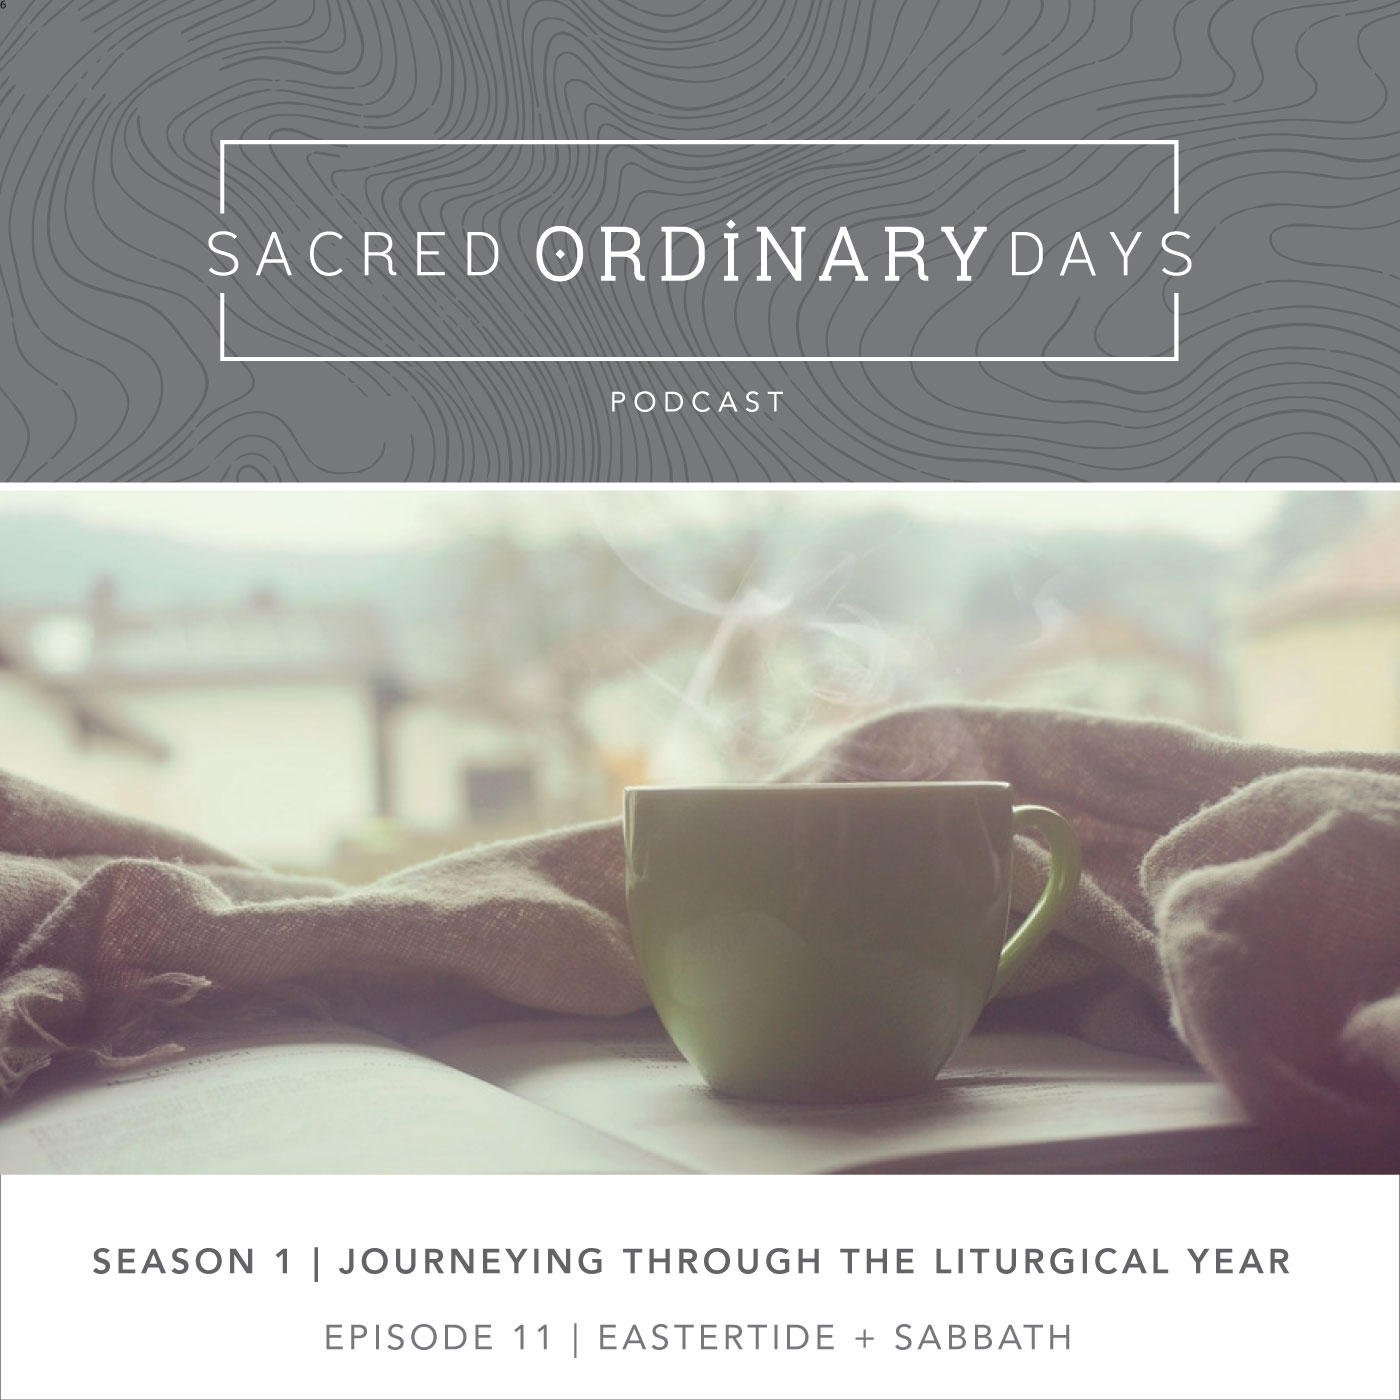 Sacred Ordinary Days Podcast